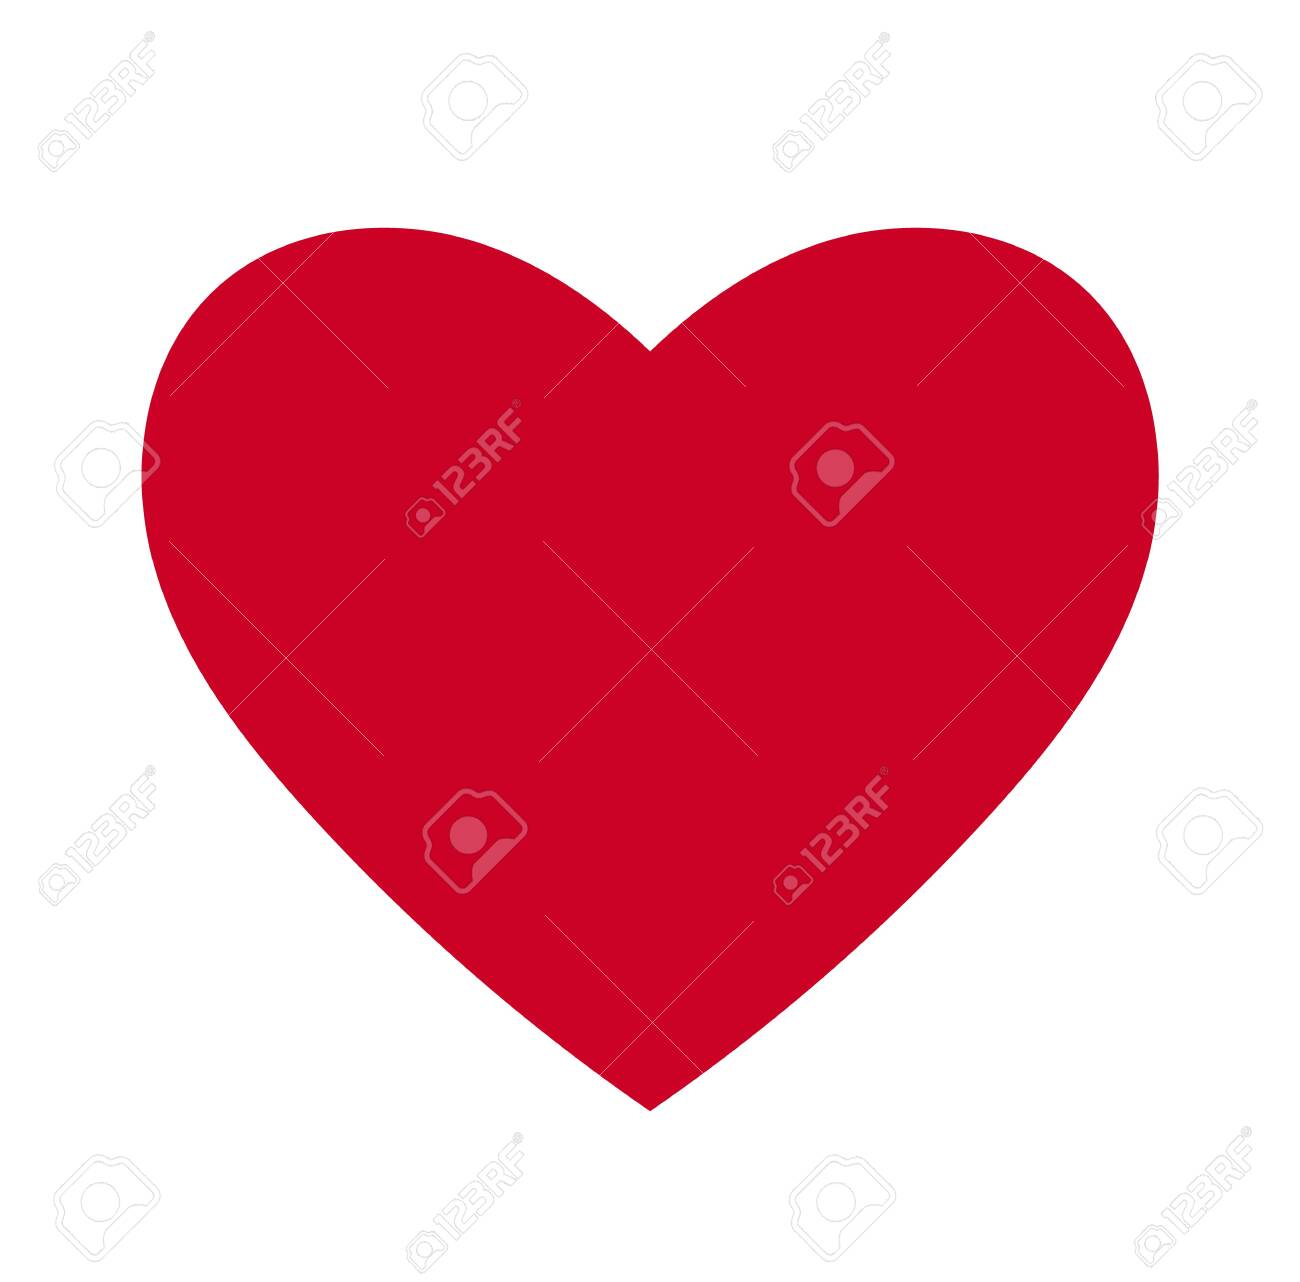 Heart, Symbol of Love and Valentine's Day. Flat Red Icon Isolated on White Background. Vector illustration. - Vector - 121676824